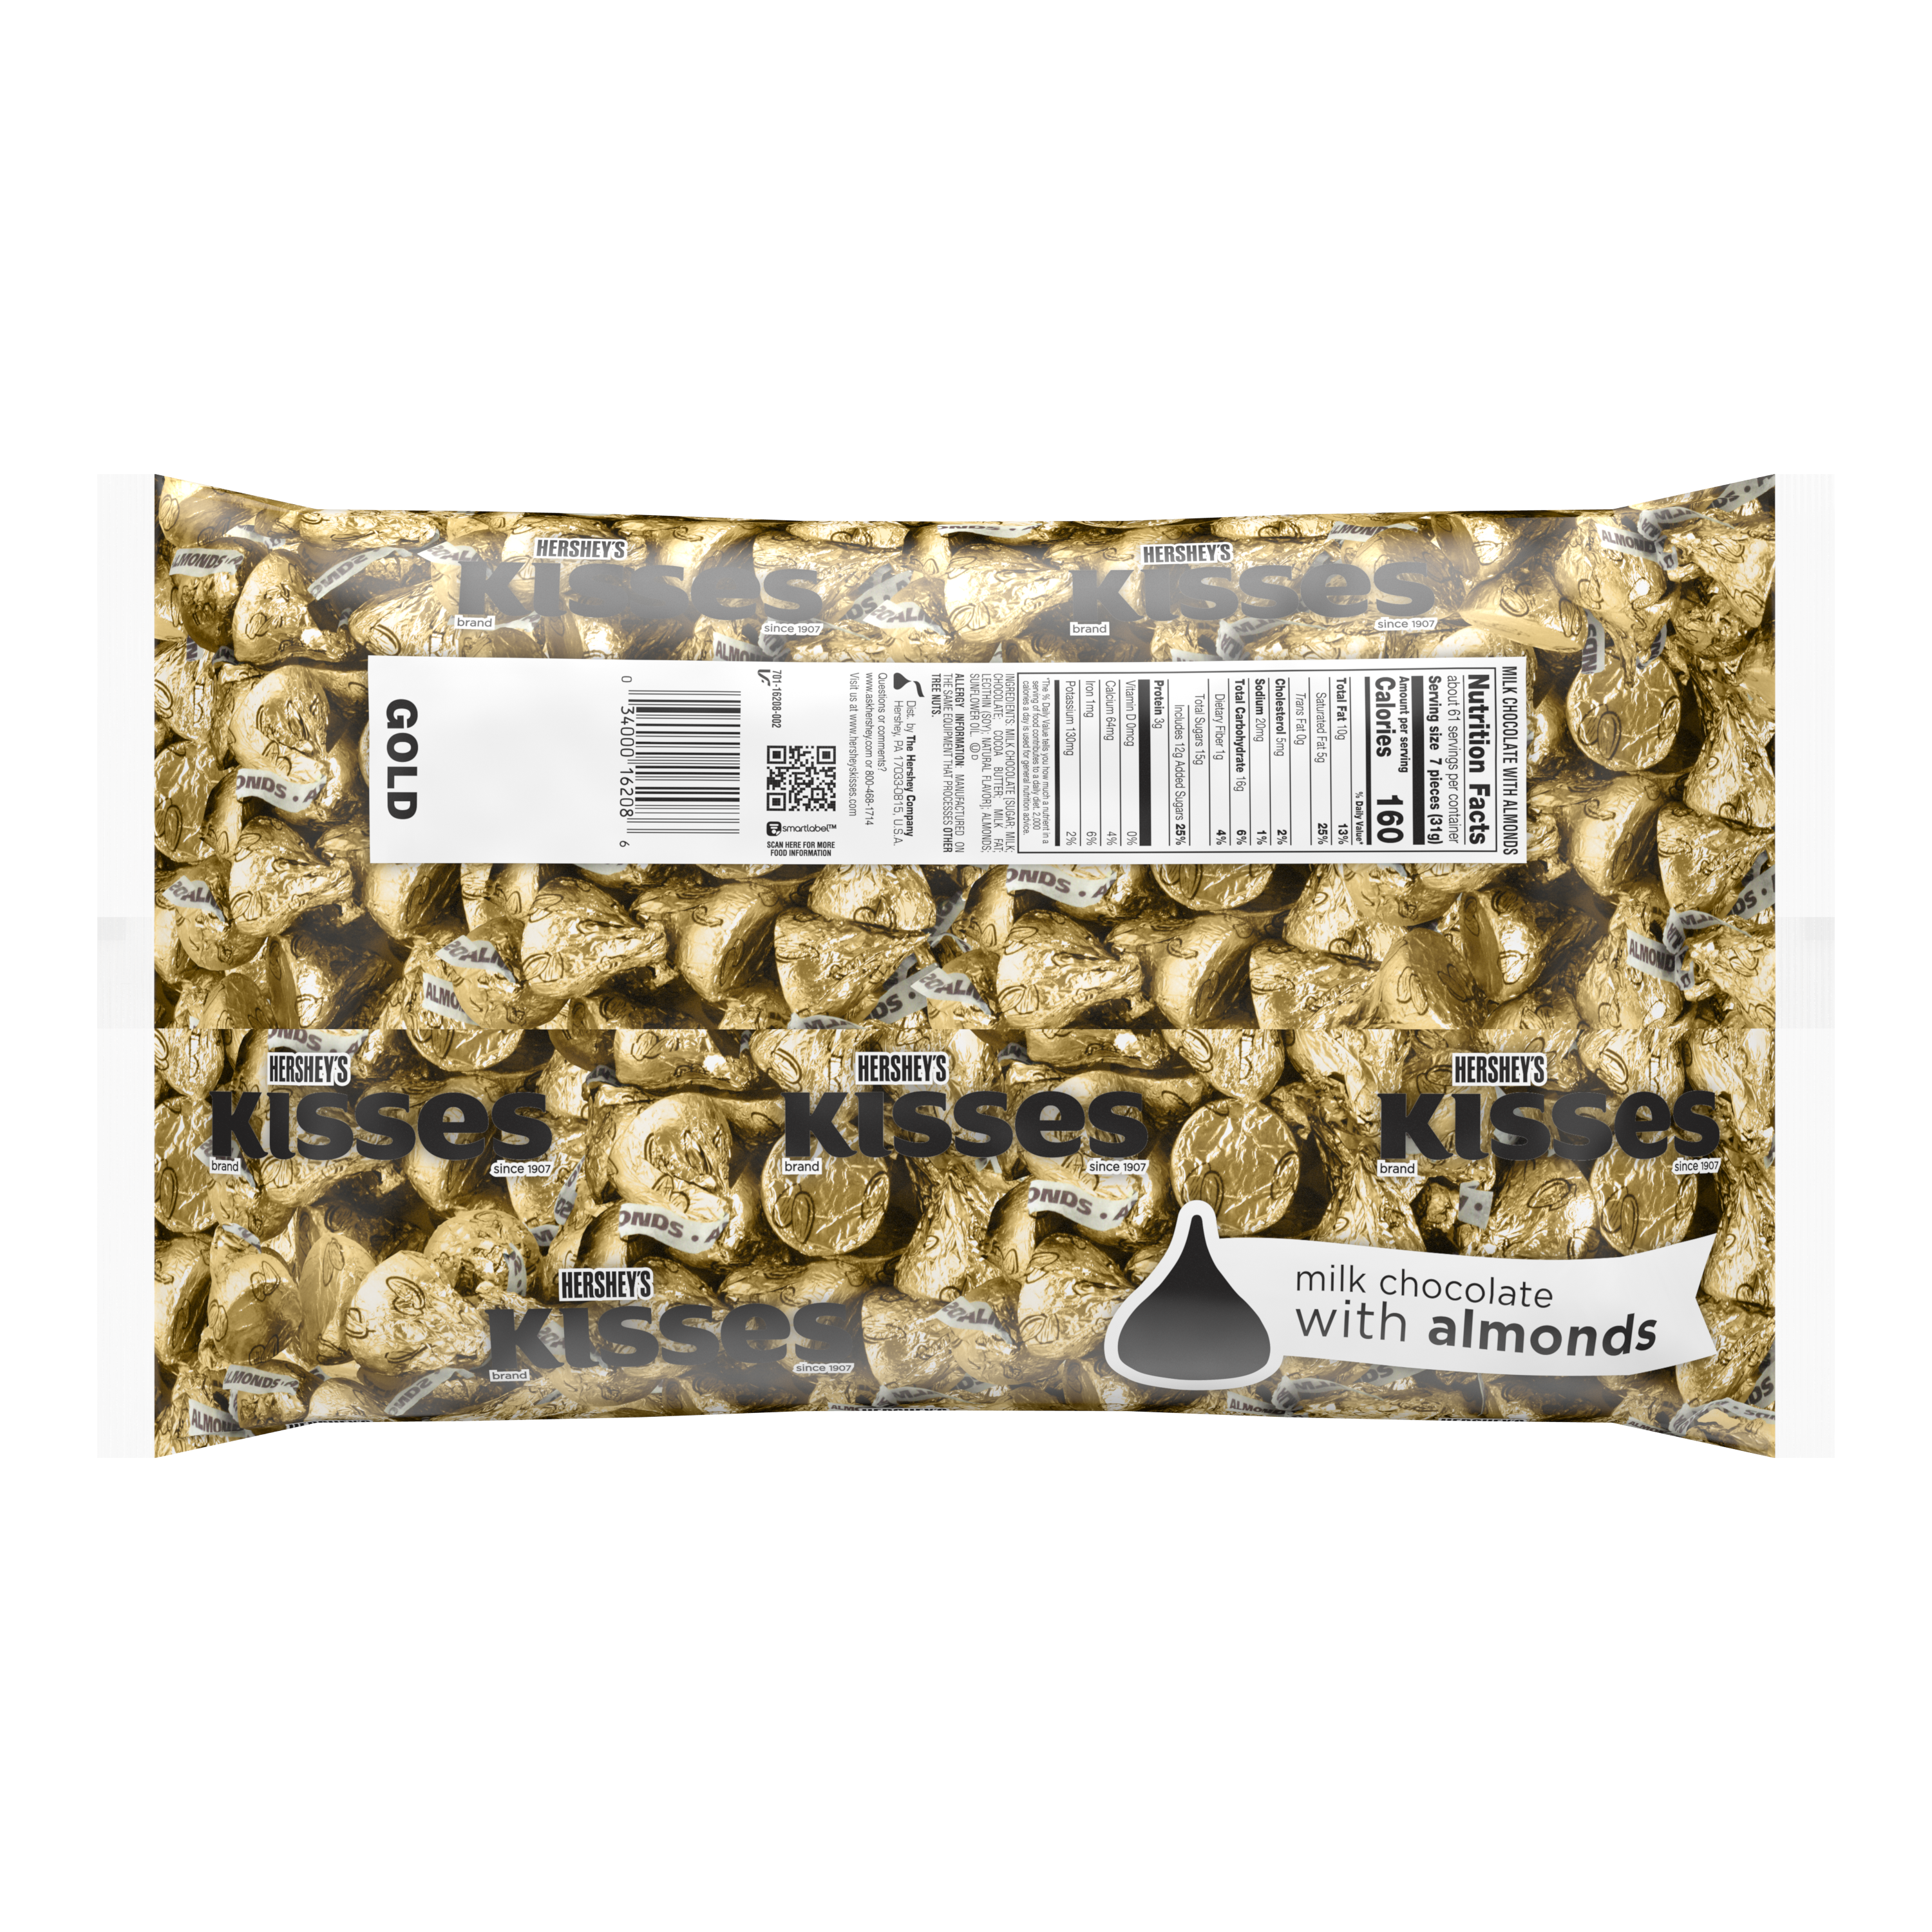 HERSHEY'S KISSES Gold Foil Milk Chocolate with Almonds Candy, 66.7 oz bag - Back of Package